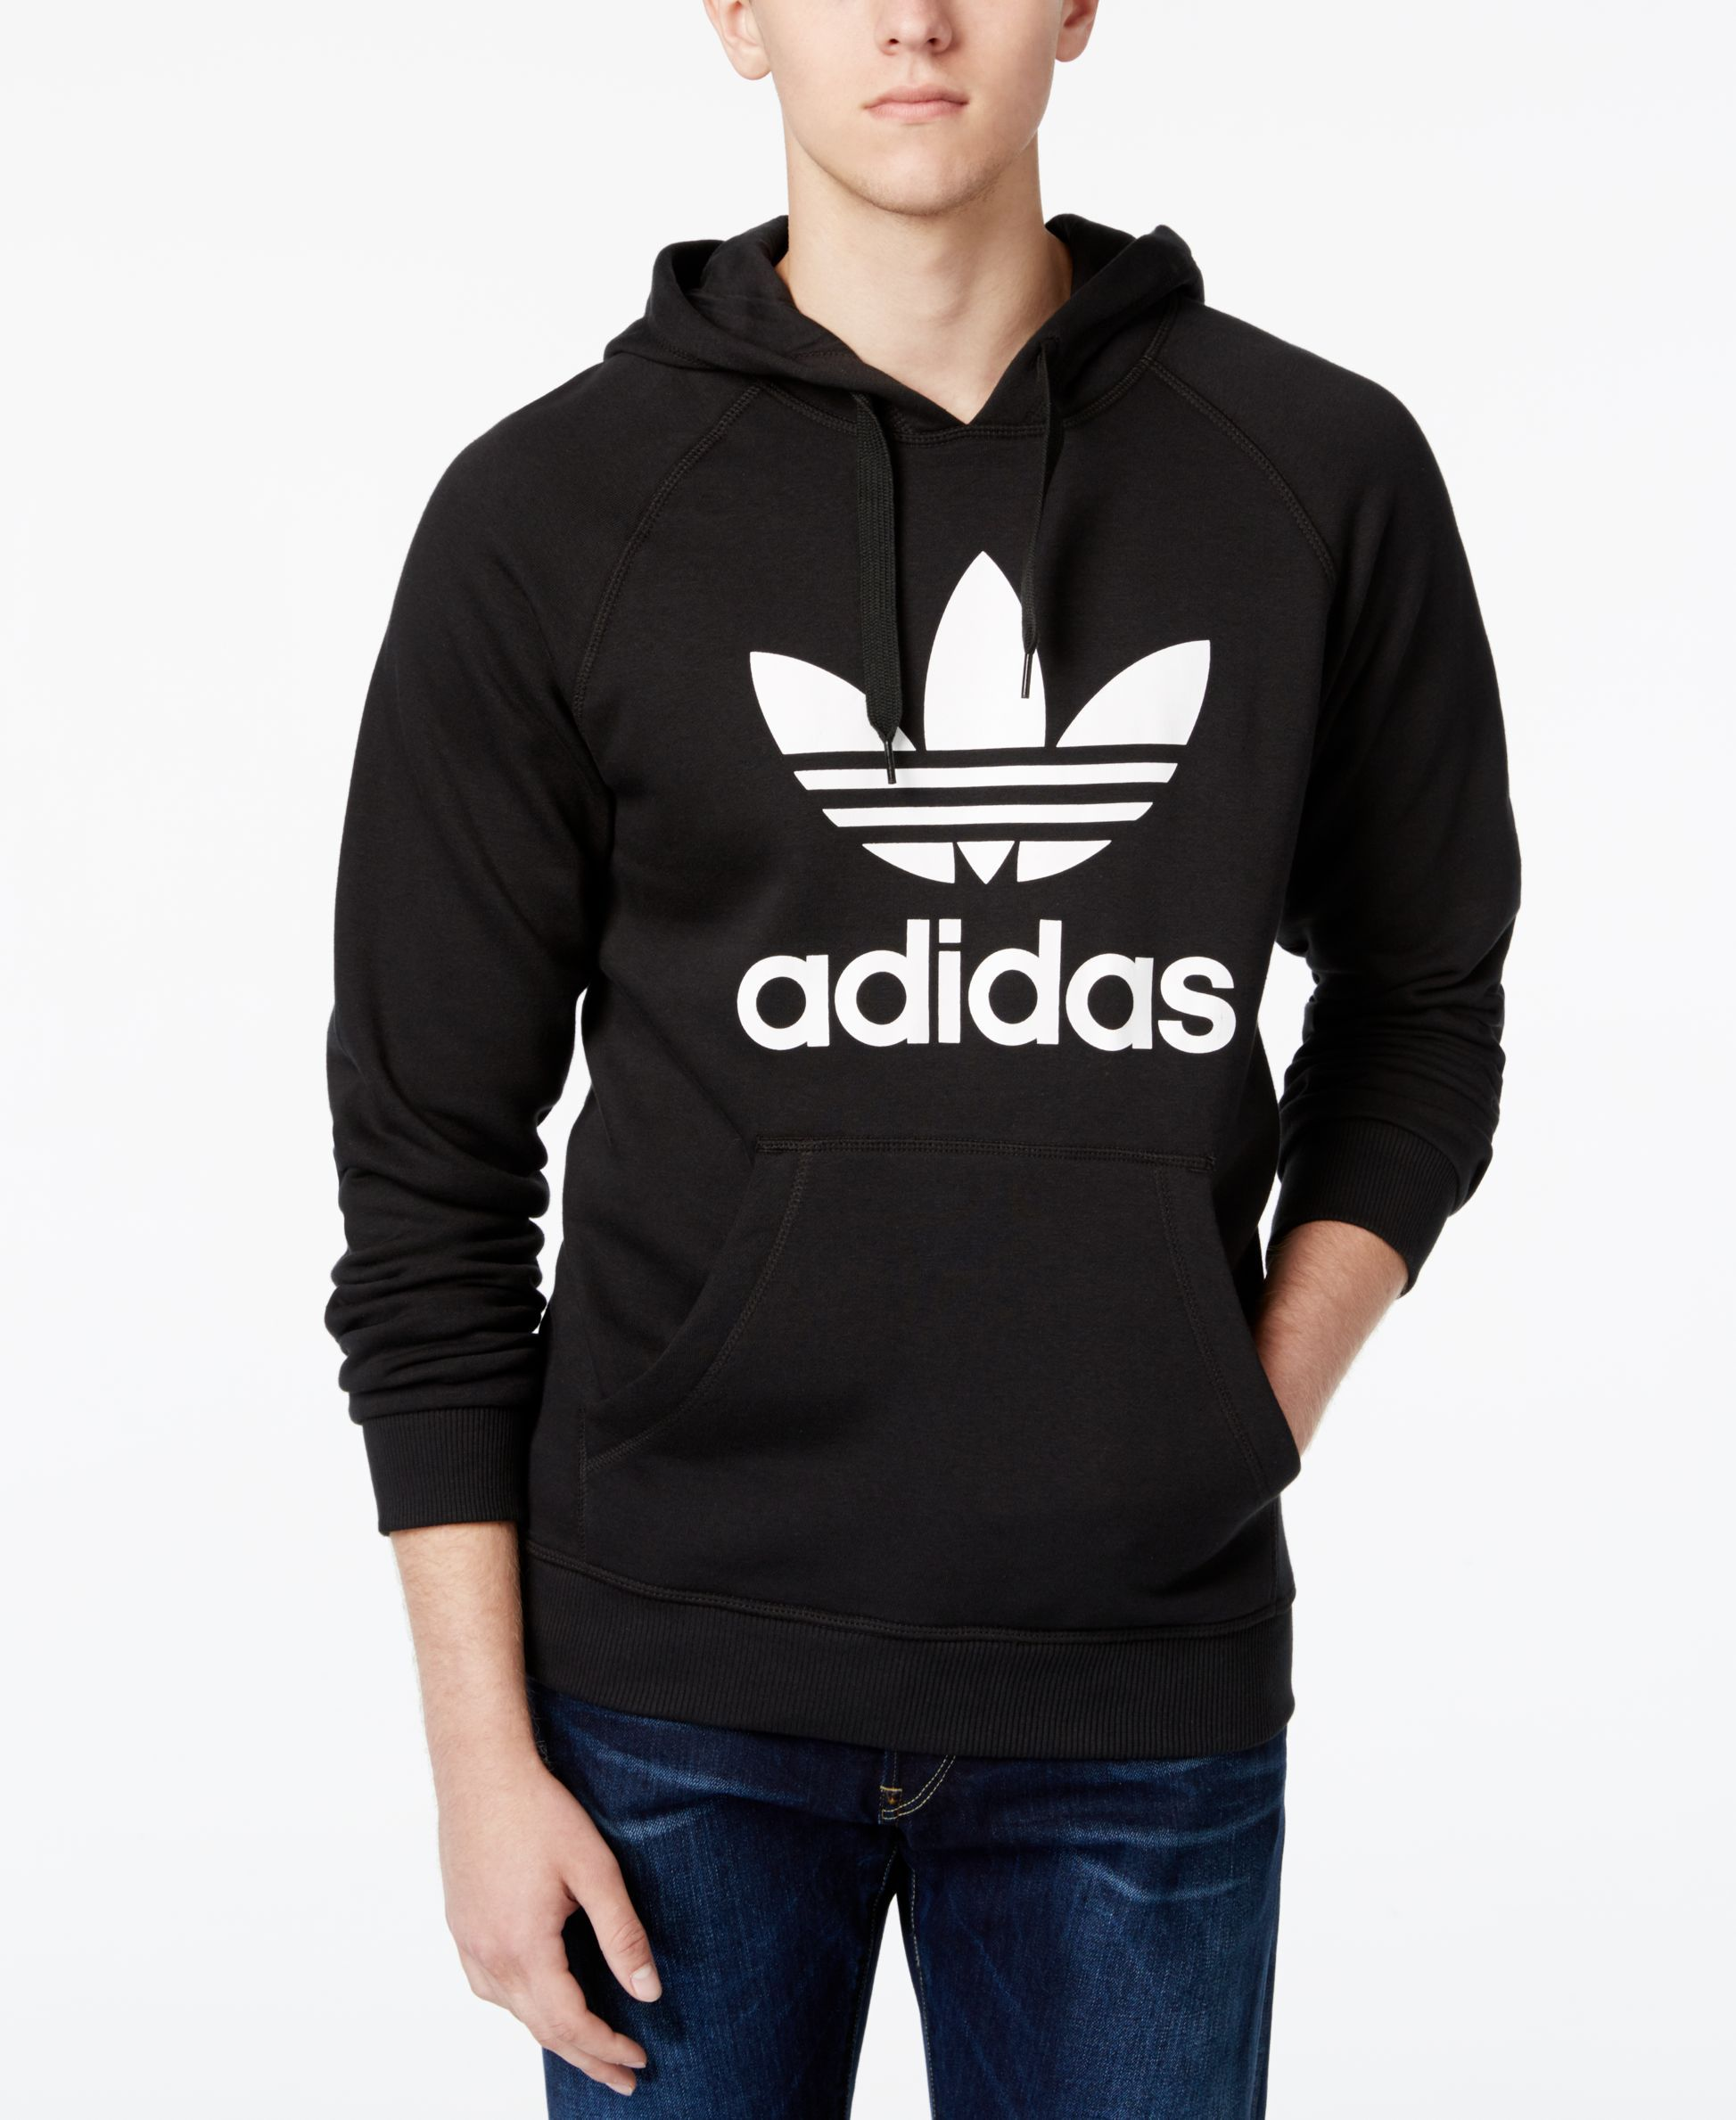 premium selection d716d a6105 Roll with an Old School look with this simple hoodie from adidas Originals,  featuring the iconic logo at the front.   Cotton polyester   Machine  washable ...